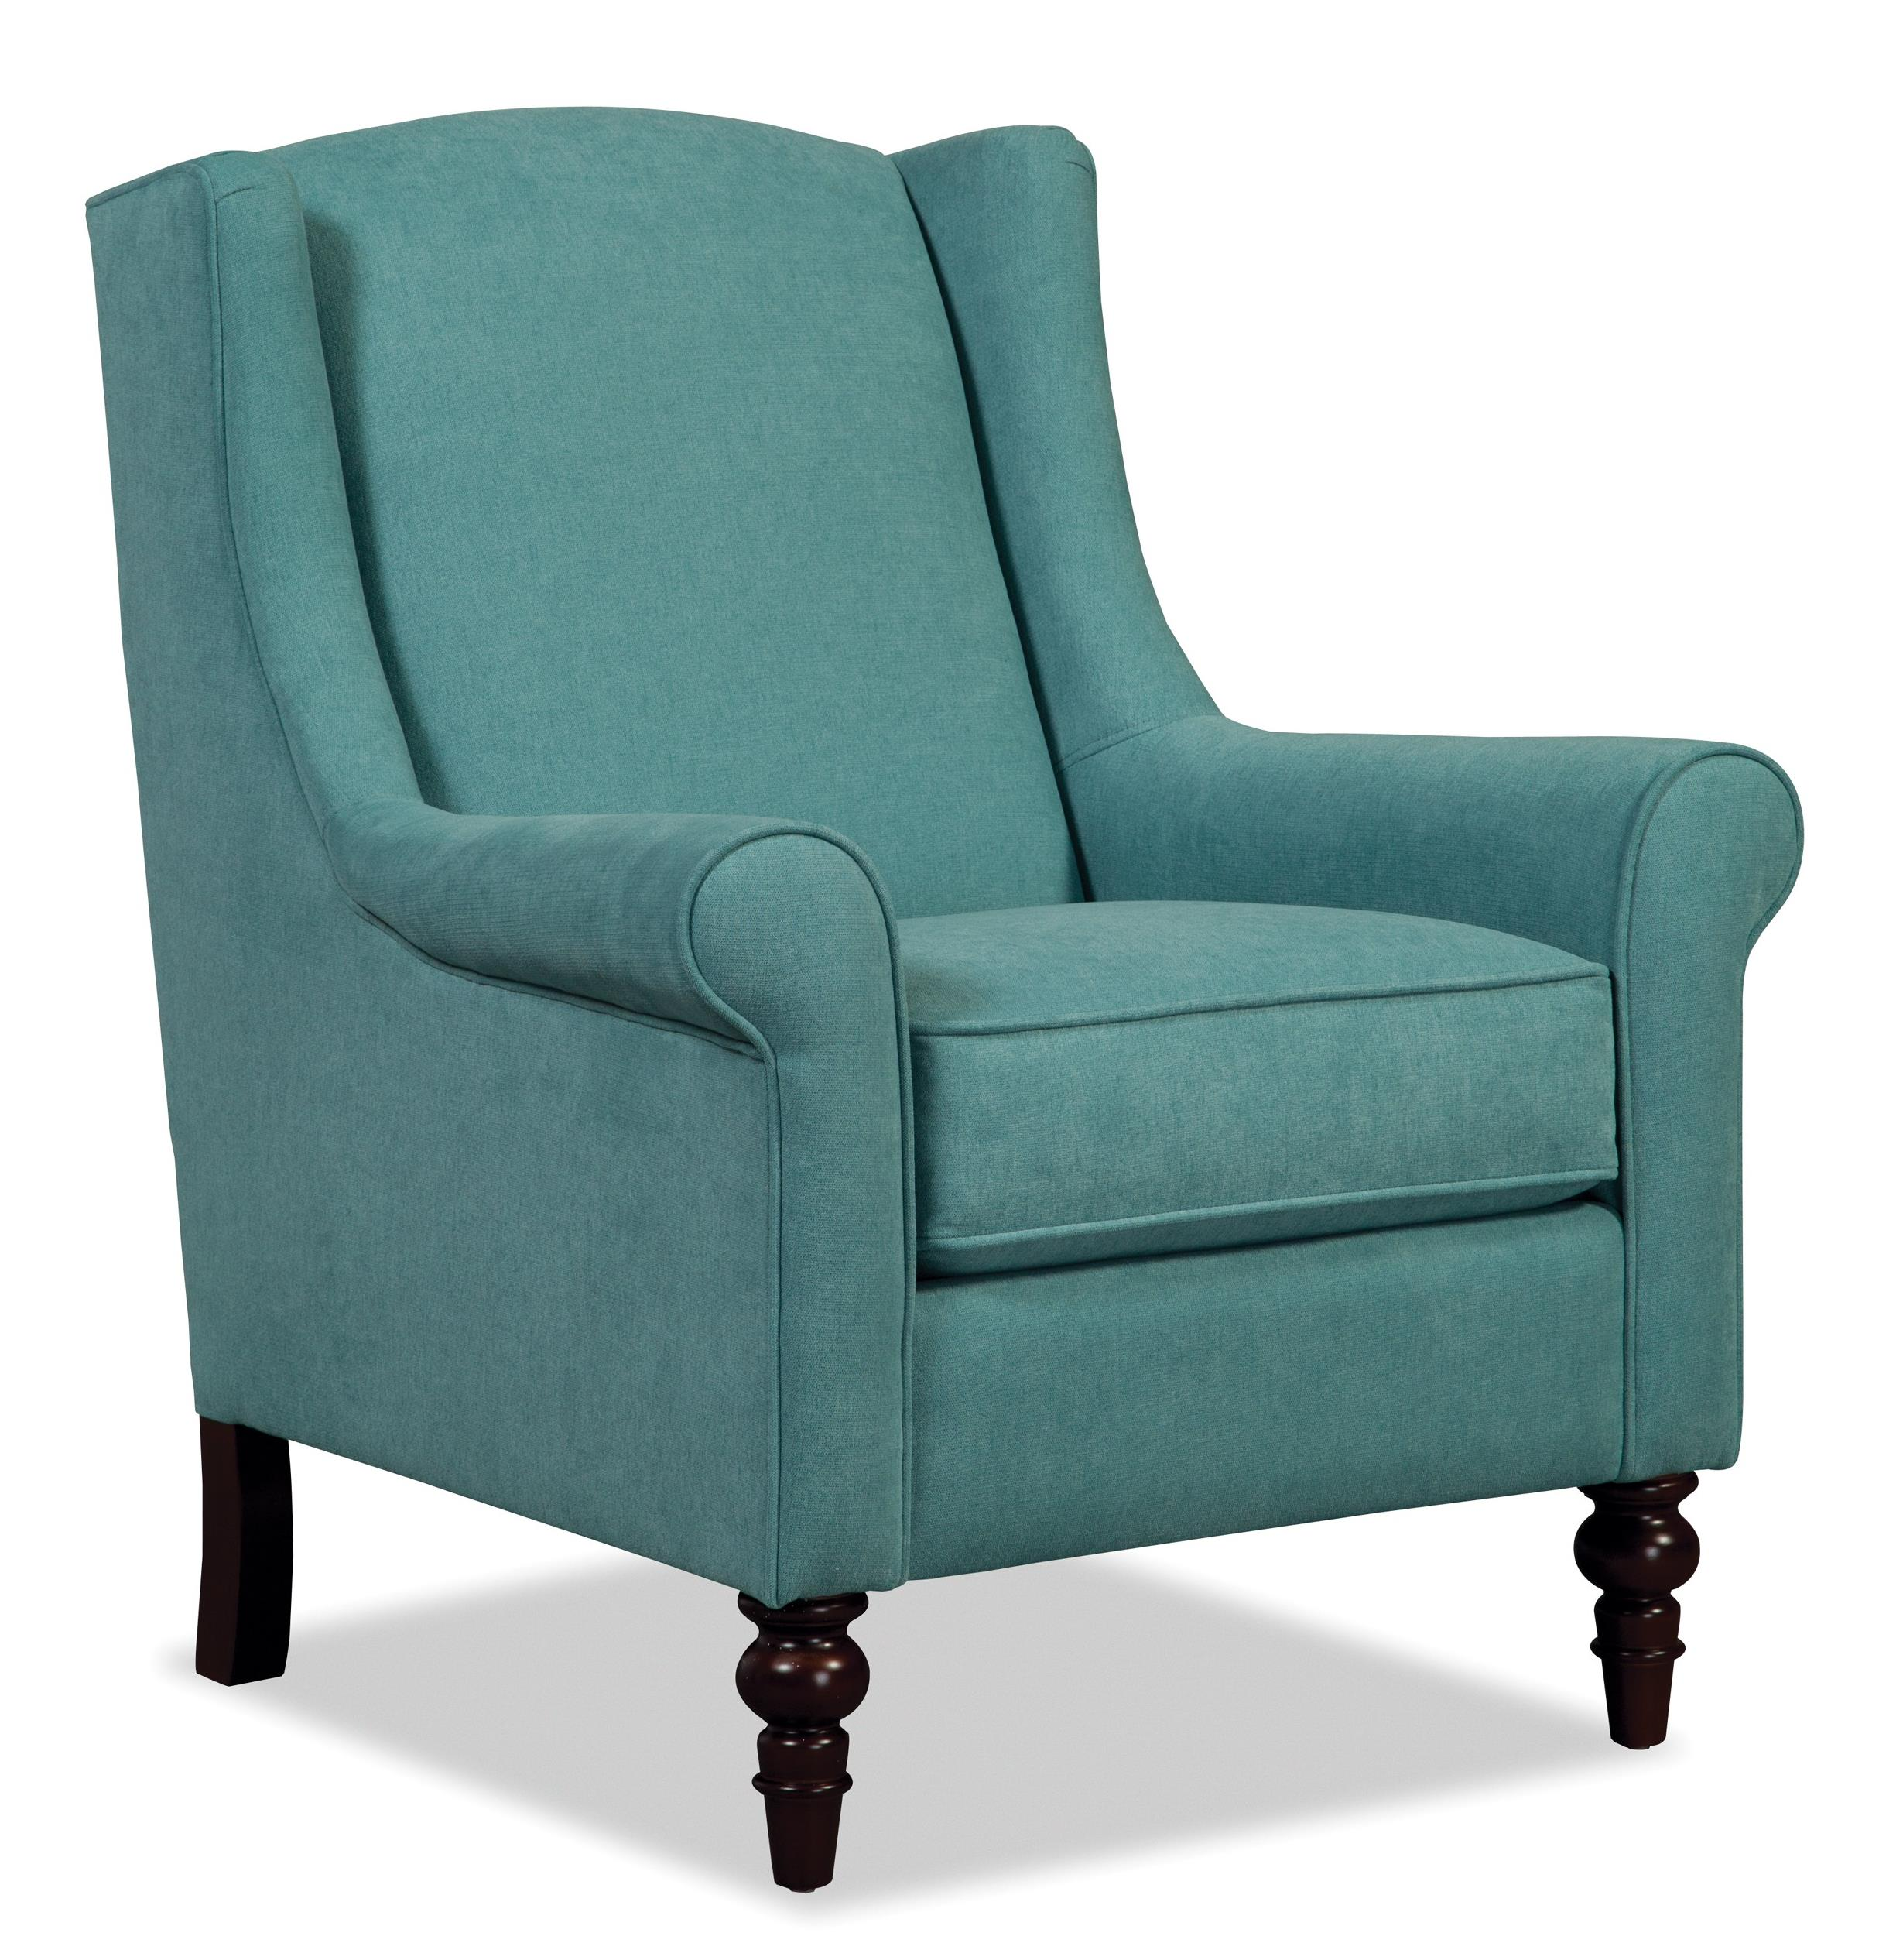 Accent Chairs Chair by Craftmaster at Turk Furniture